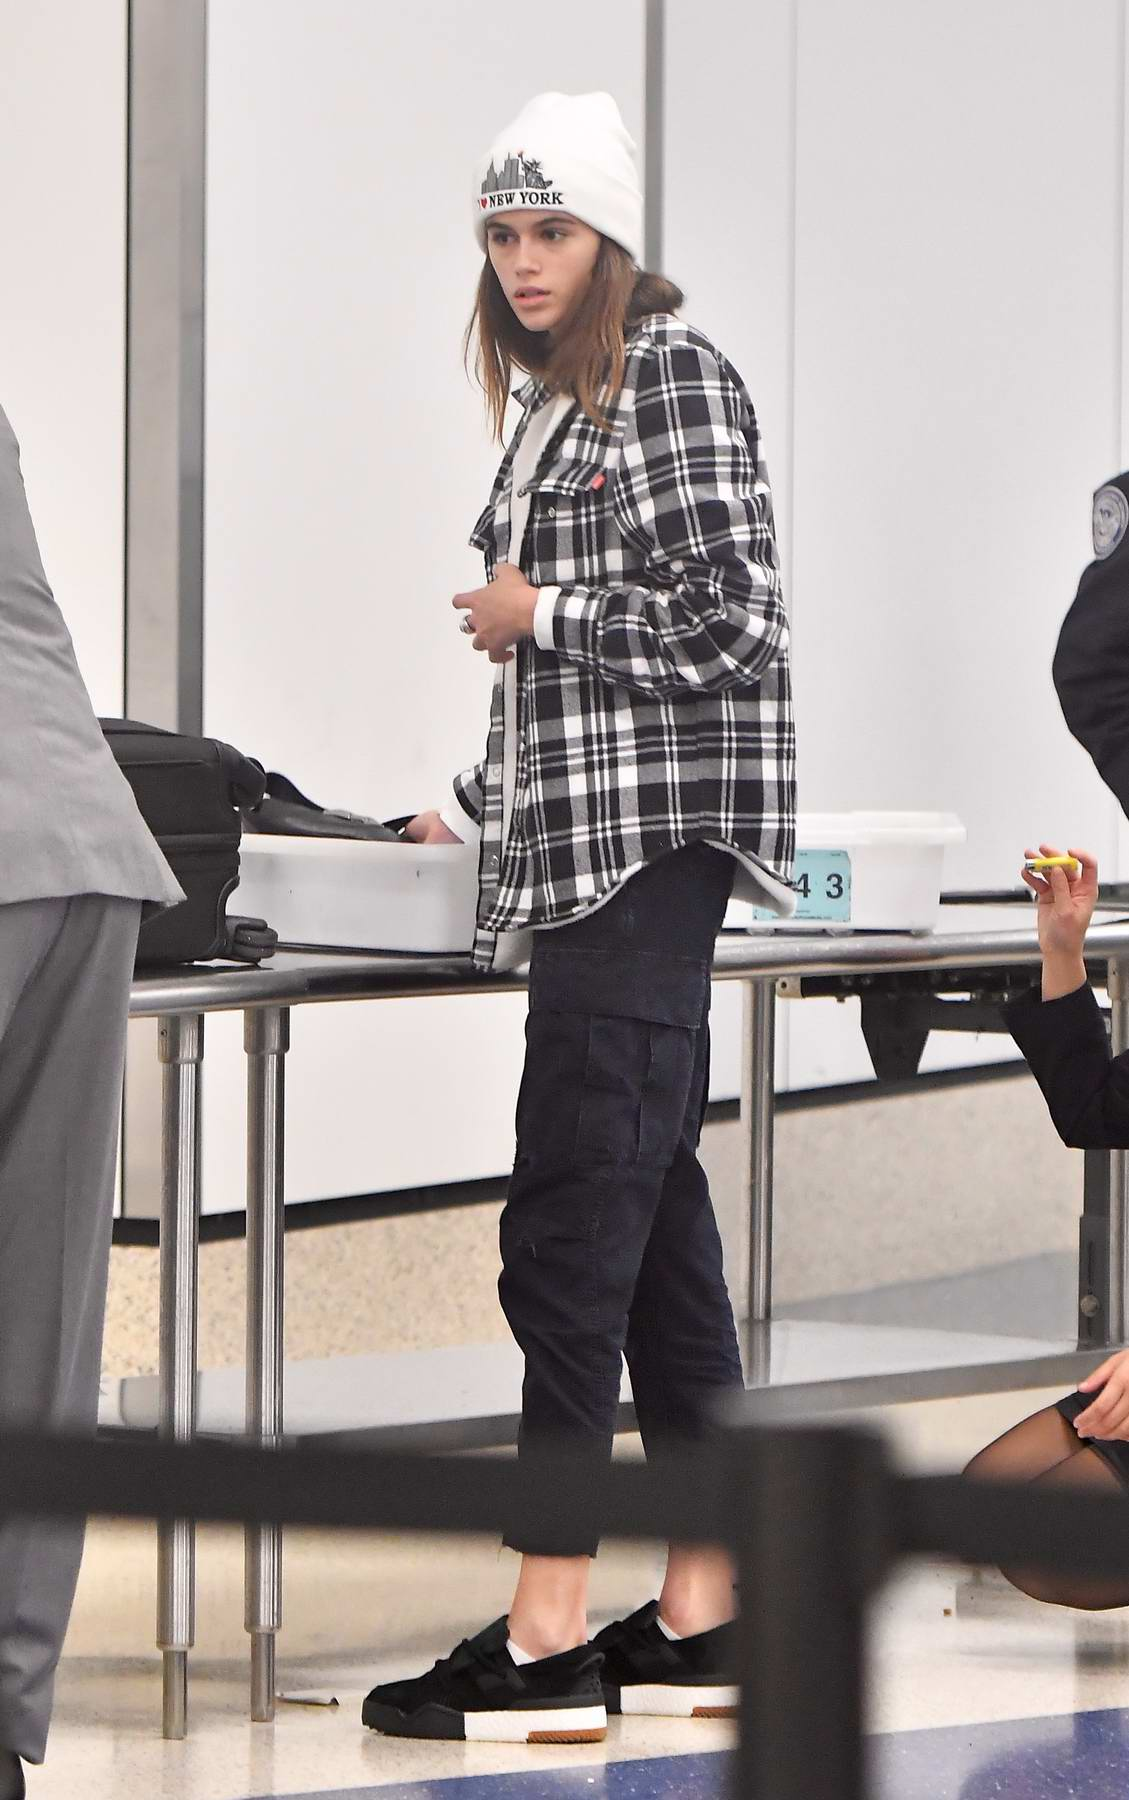 Kaia Gerber sports some casual attire at LAX airport, Los Angeles